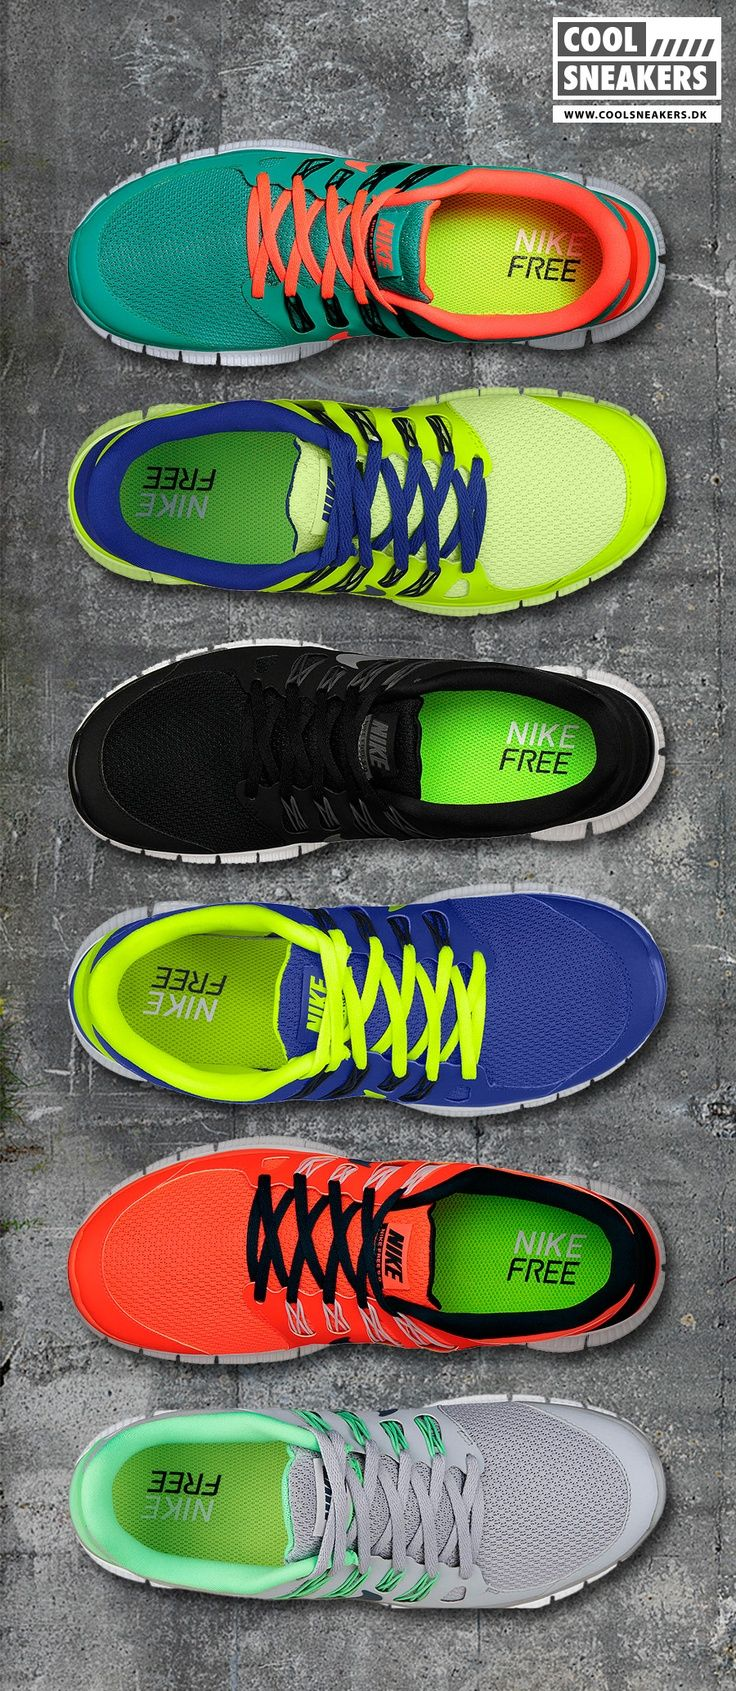 Nike Running Shoes Store Offers Cheap Nike Free Runs, Nike Air Max, Nike Frees, Nike Free Run 2, Nike Free Run3 For Women, Men And Kids In Nike Free Run Store.